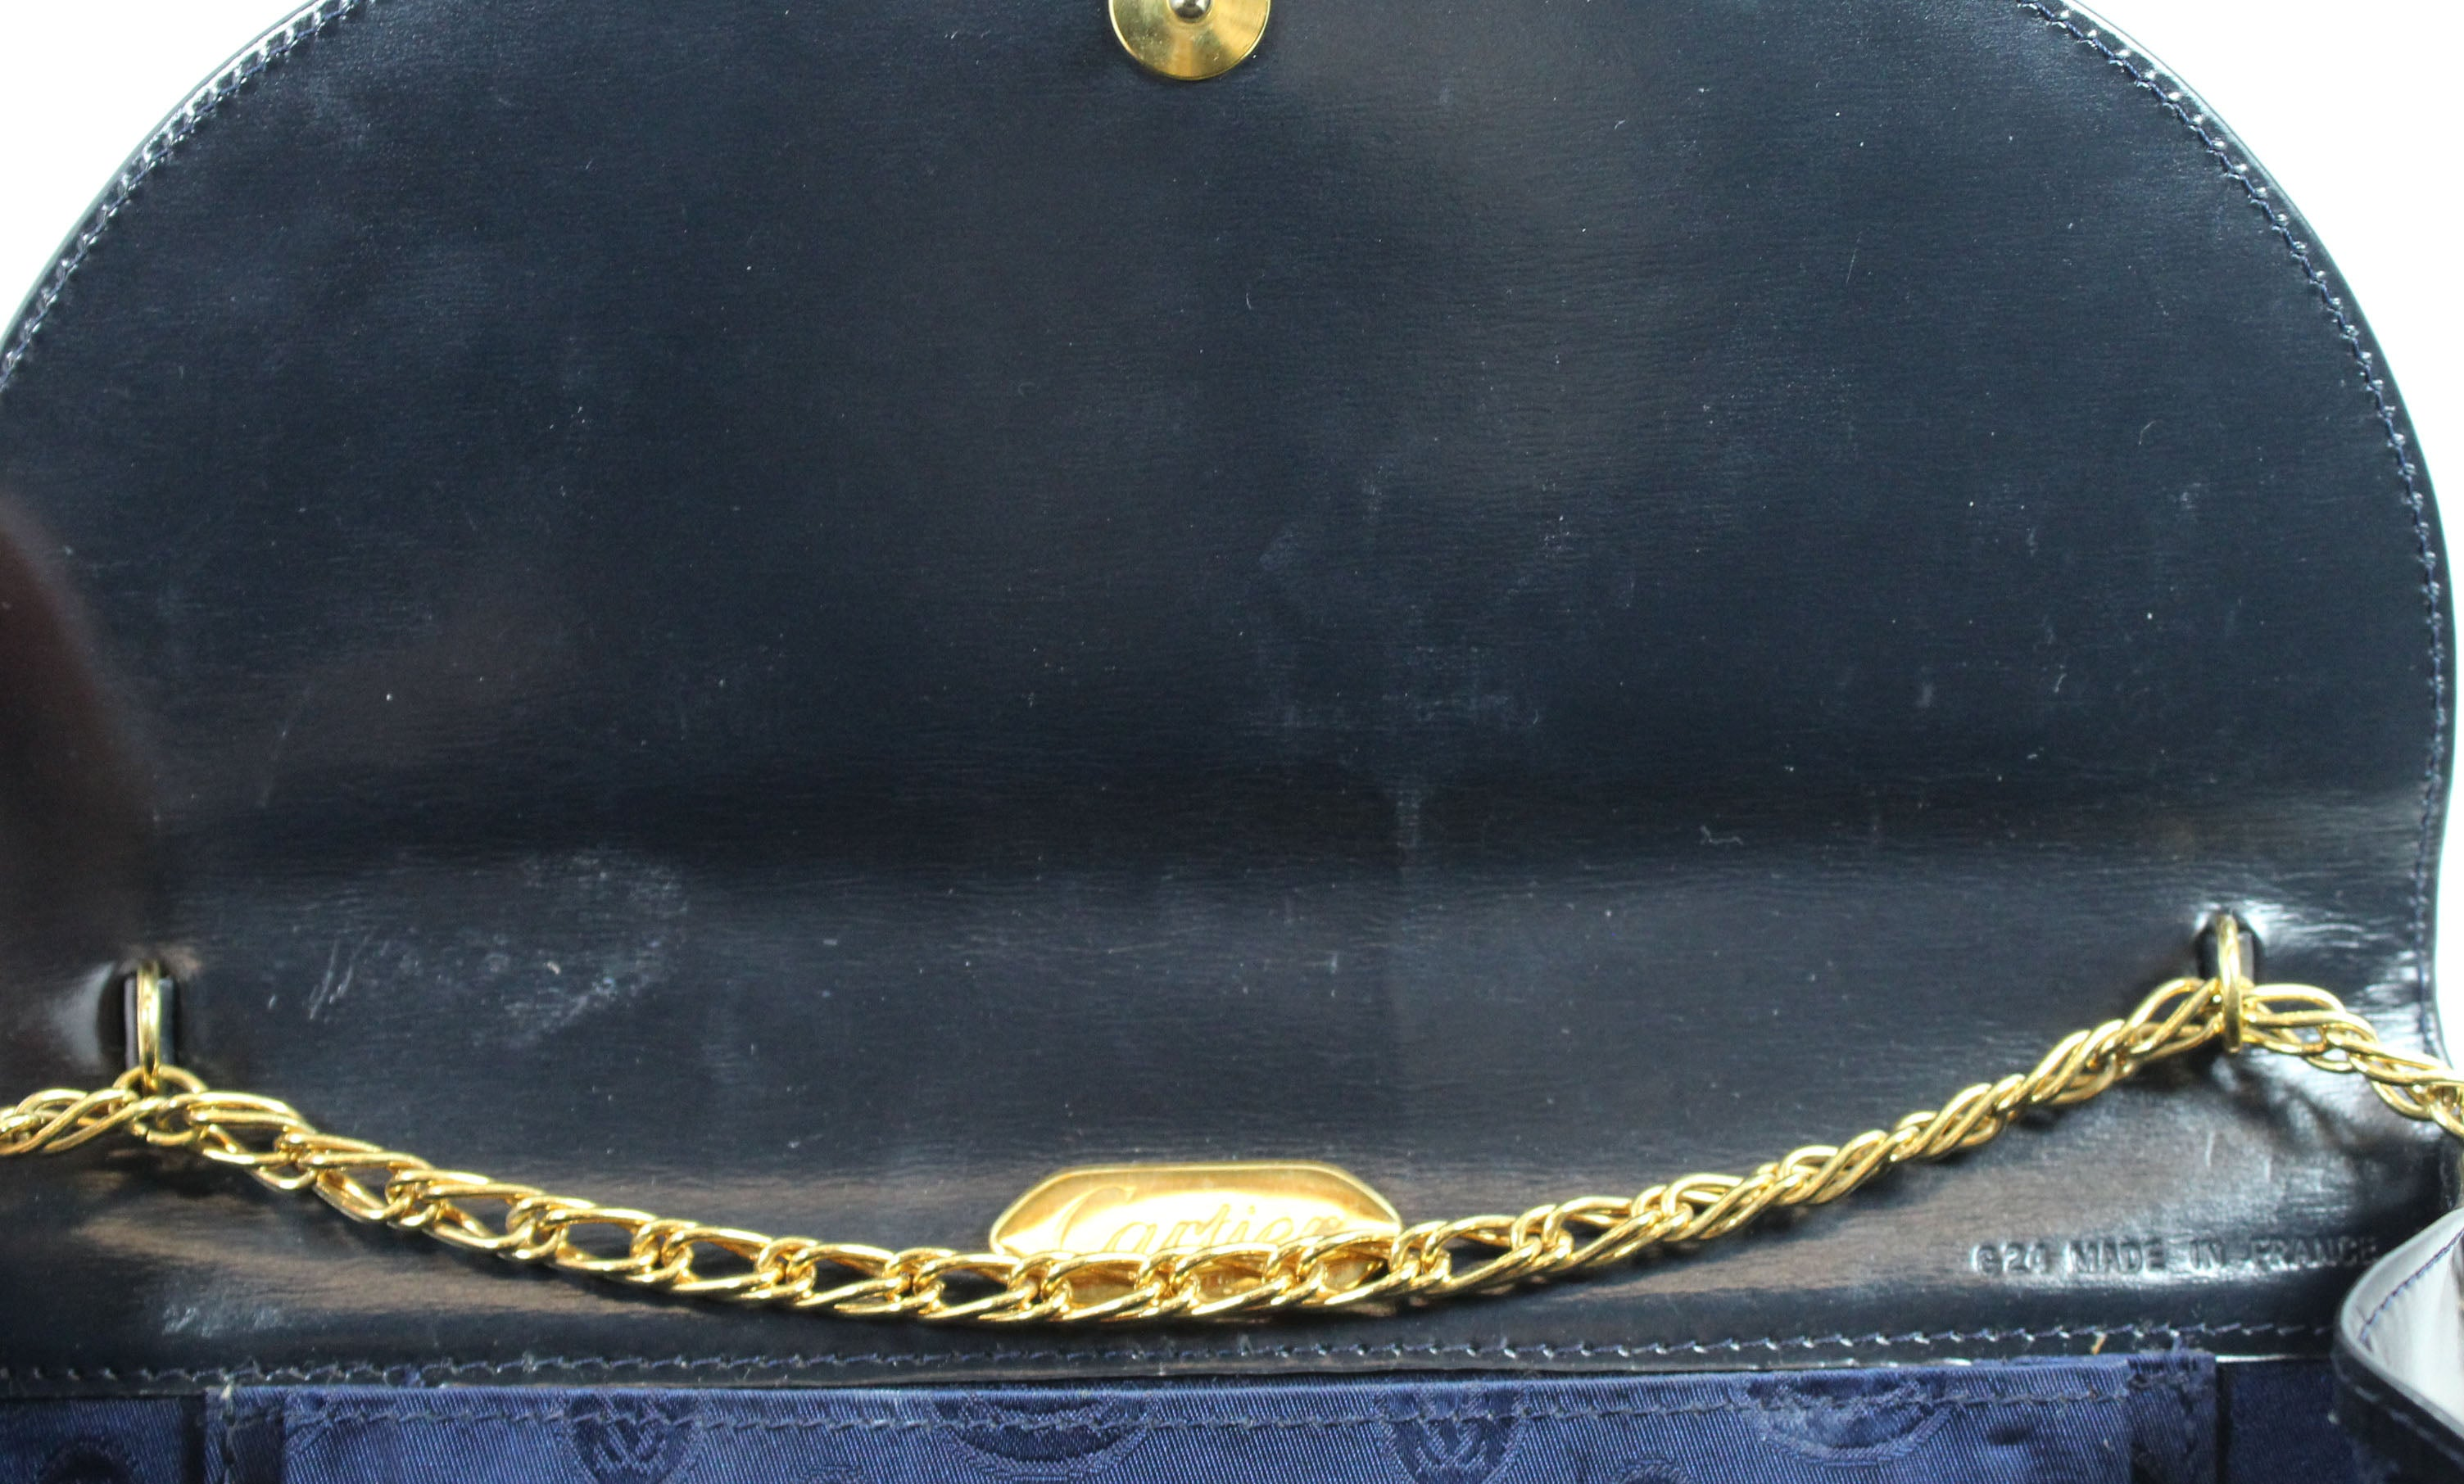 Cartier Vintage Navy Leather Deco Evening Bag